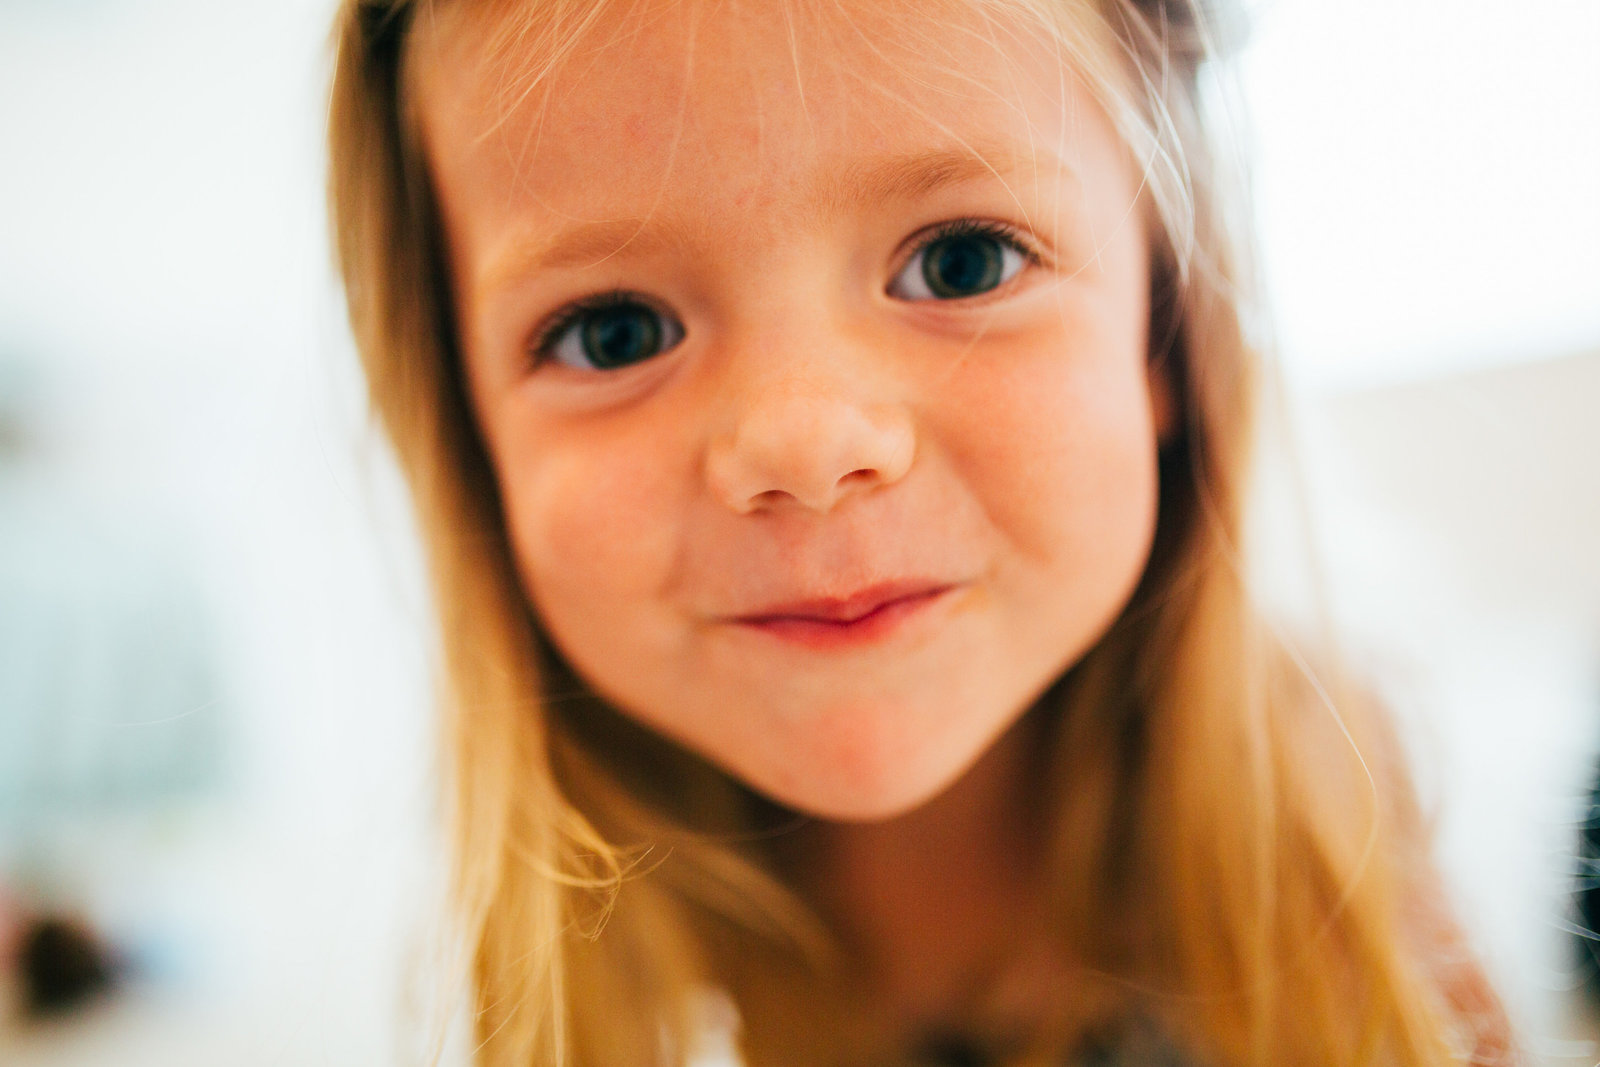 Smiling relaxed natural little girl photograph